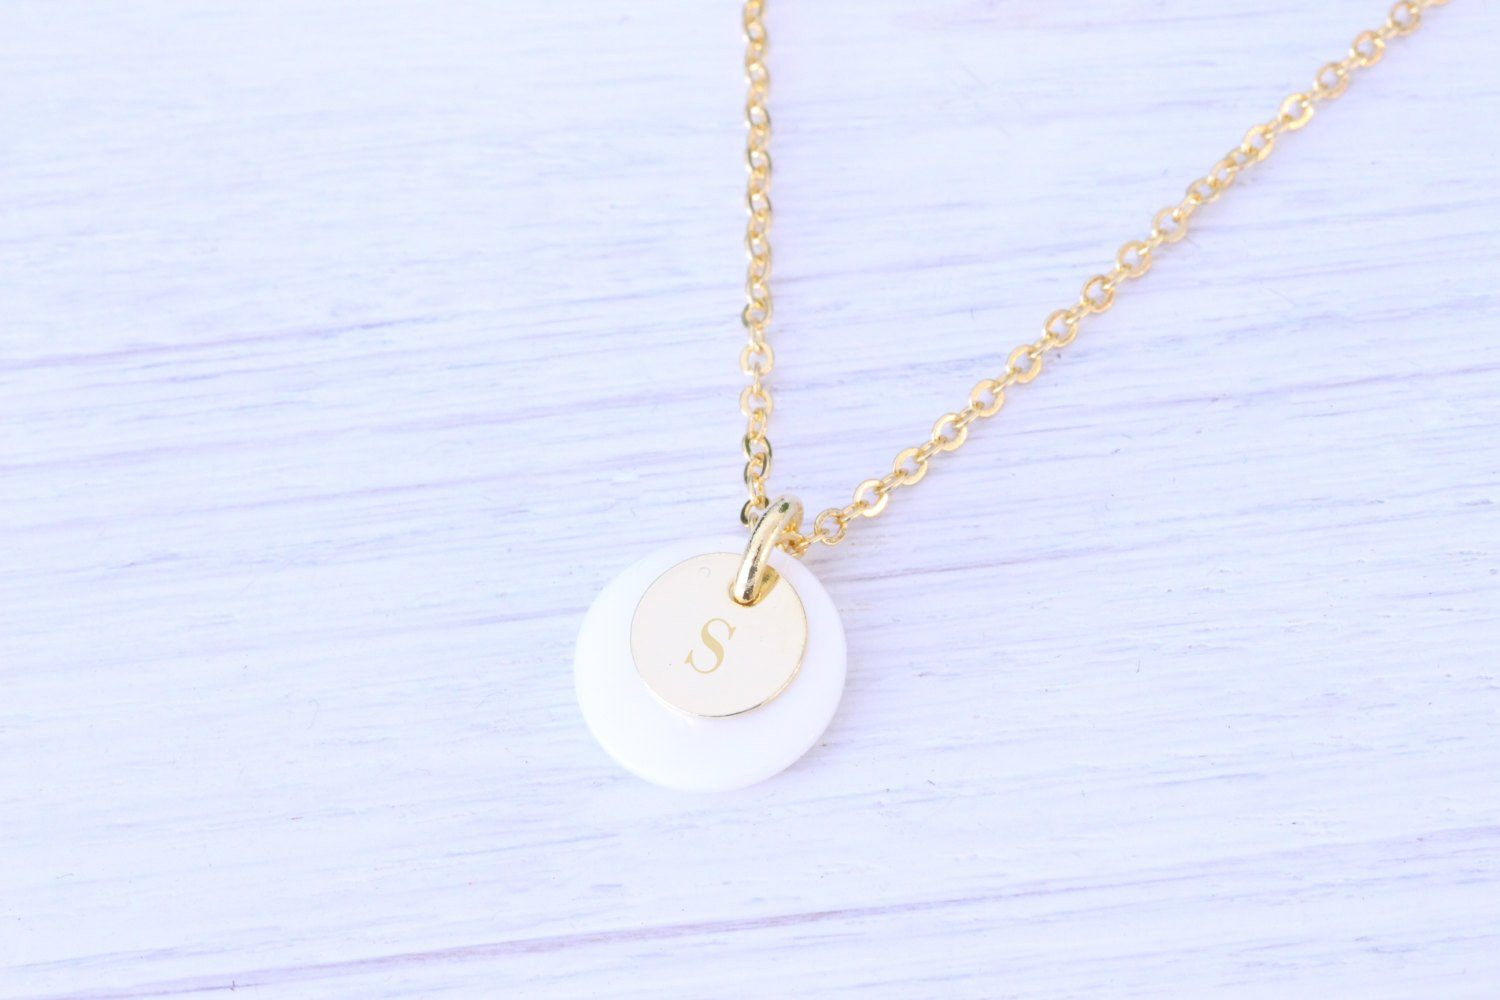 Personalized Gold and Mother of Pearl initial Necklace - Boho Jewelry - product_type] - Beautiz